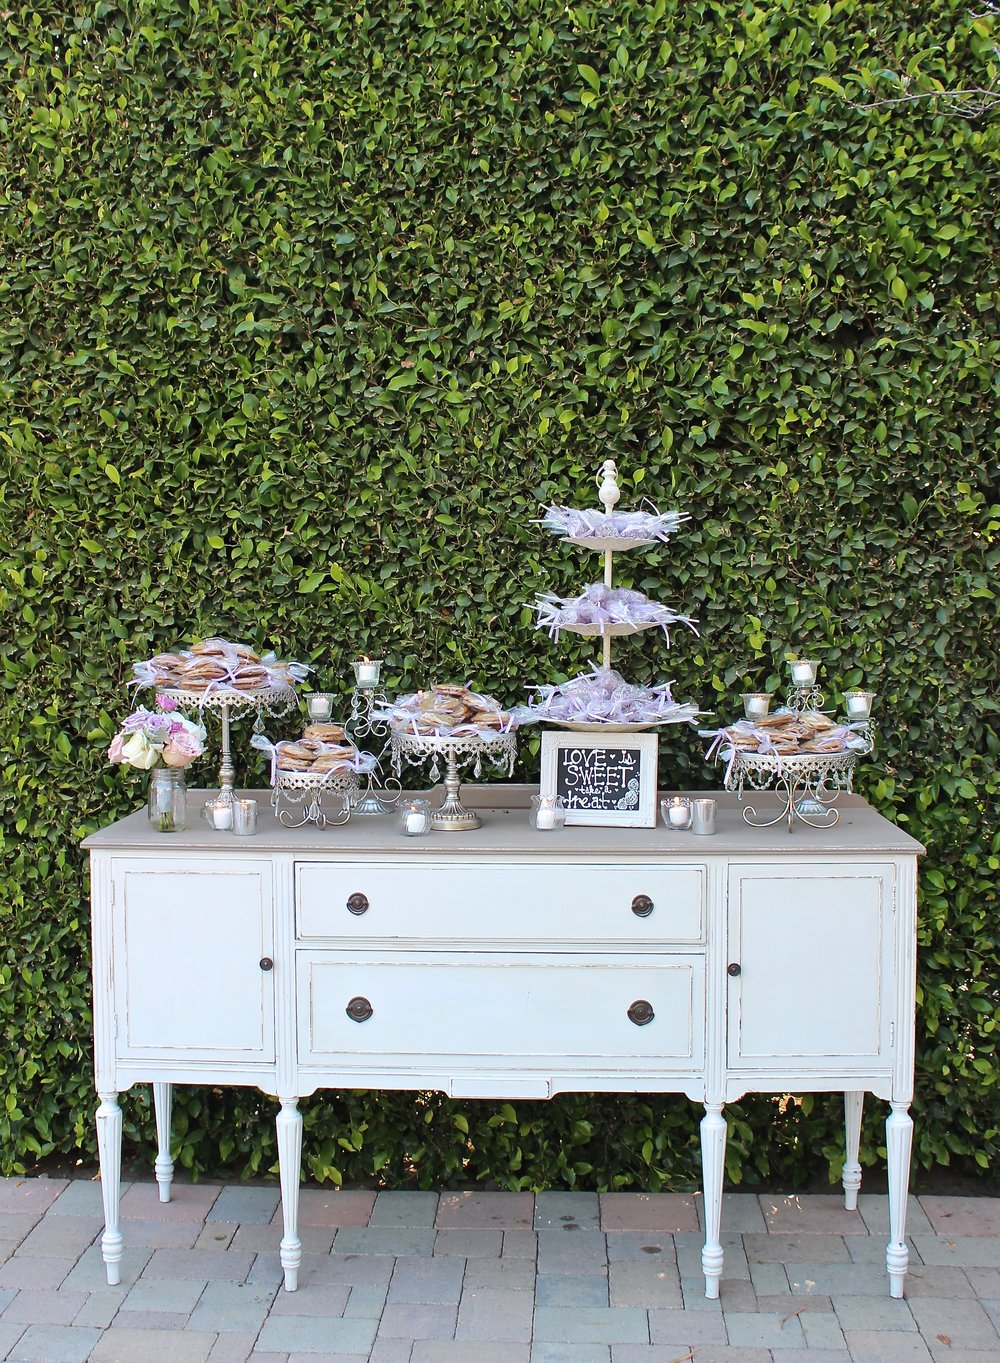 WHITE/GRAY BUFFET - $145